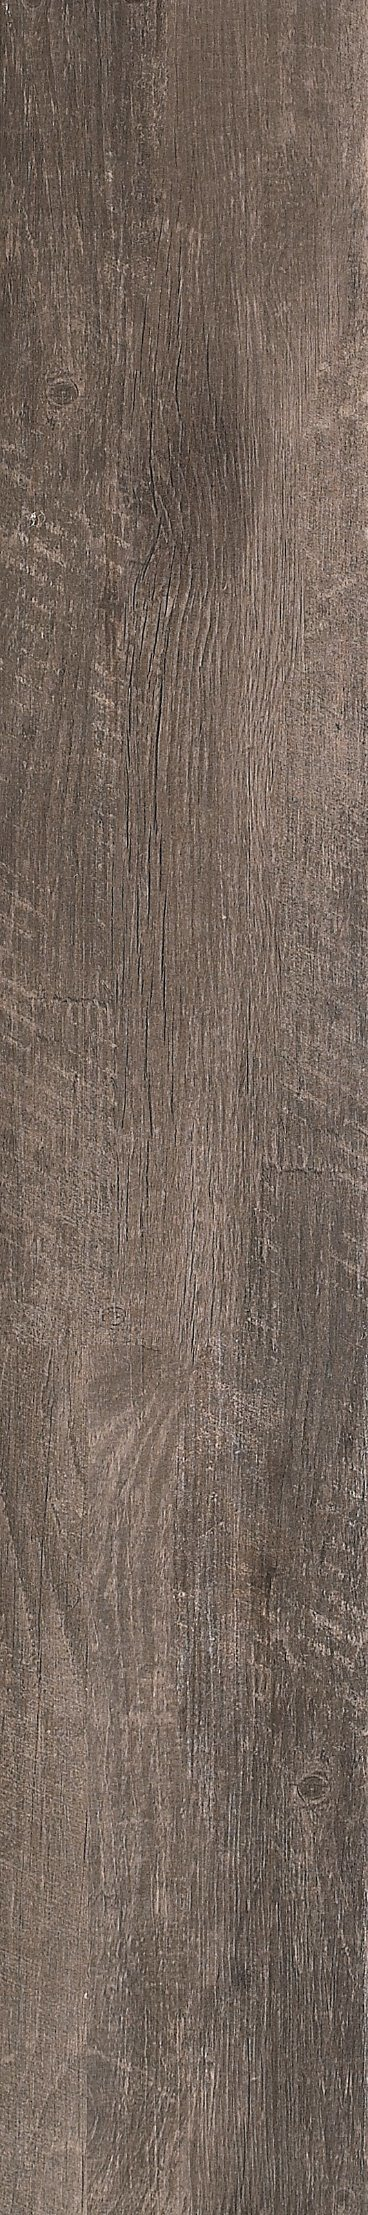 Old Style Wood Surface Glazed Porcelain Flooring Tile Ceramic Tiles